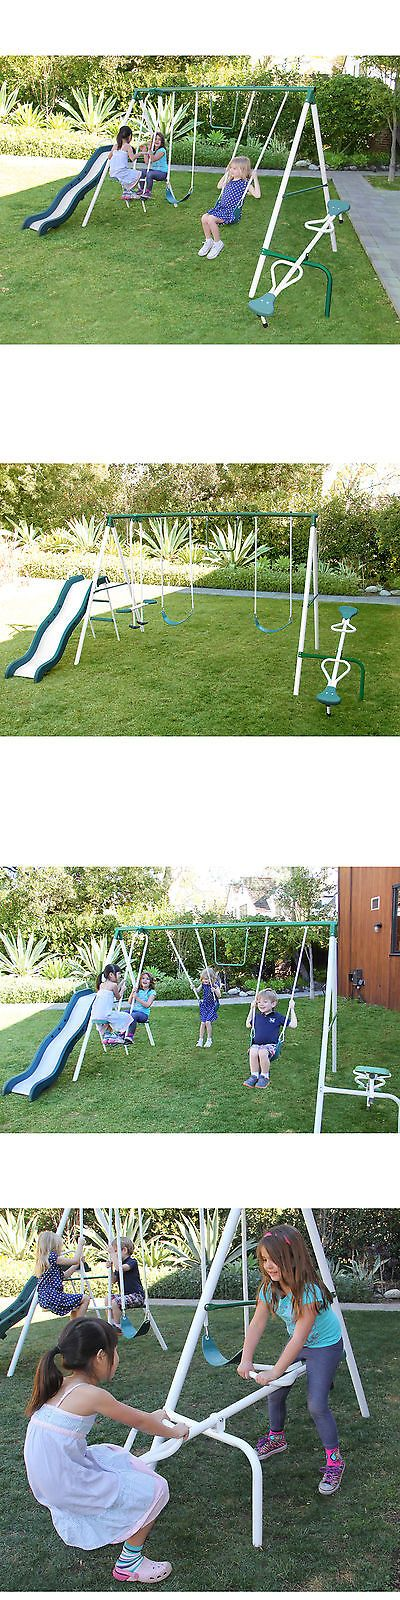 Swings Slides and Gyms 16515: Metal Swing And Slide Set 2 Swing Seats Trapeze Slide Teeter-Totter Glide Ride -> BUY IT NOW ONLY: $184.98 on eBay!